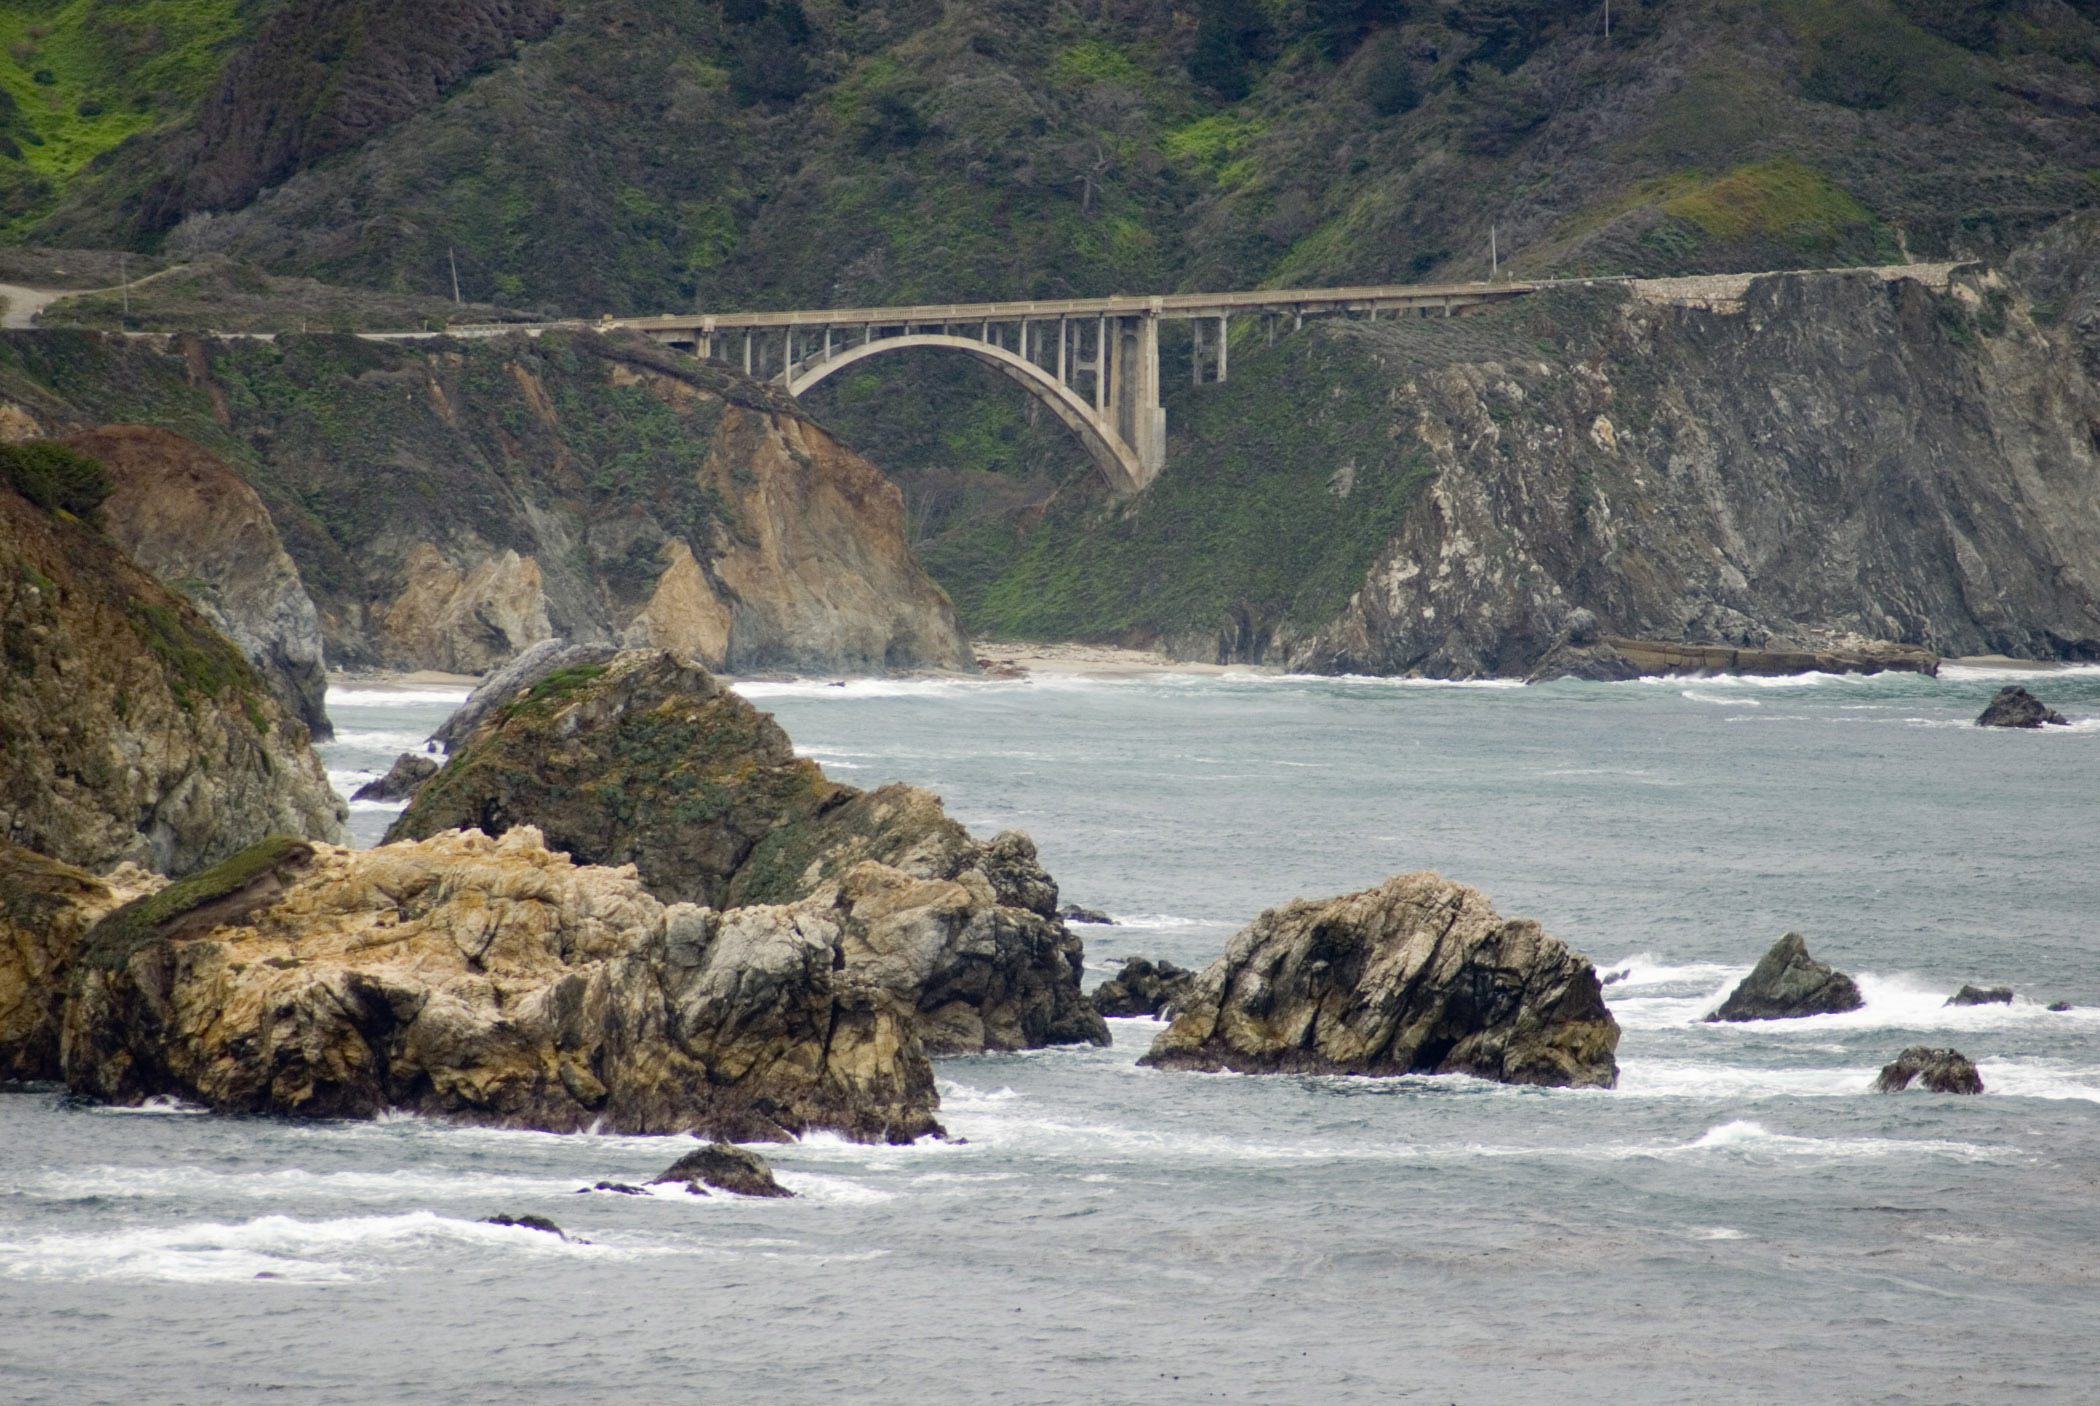 Rocky Creek road bridge, Big Sur, Callifornia, a landmark arched concrete bridge spanning a canyon on the coastline